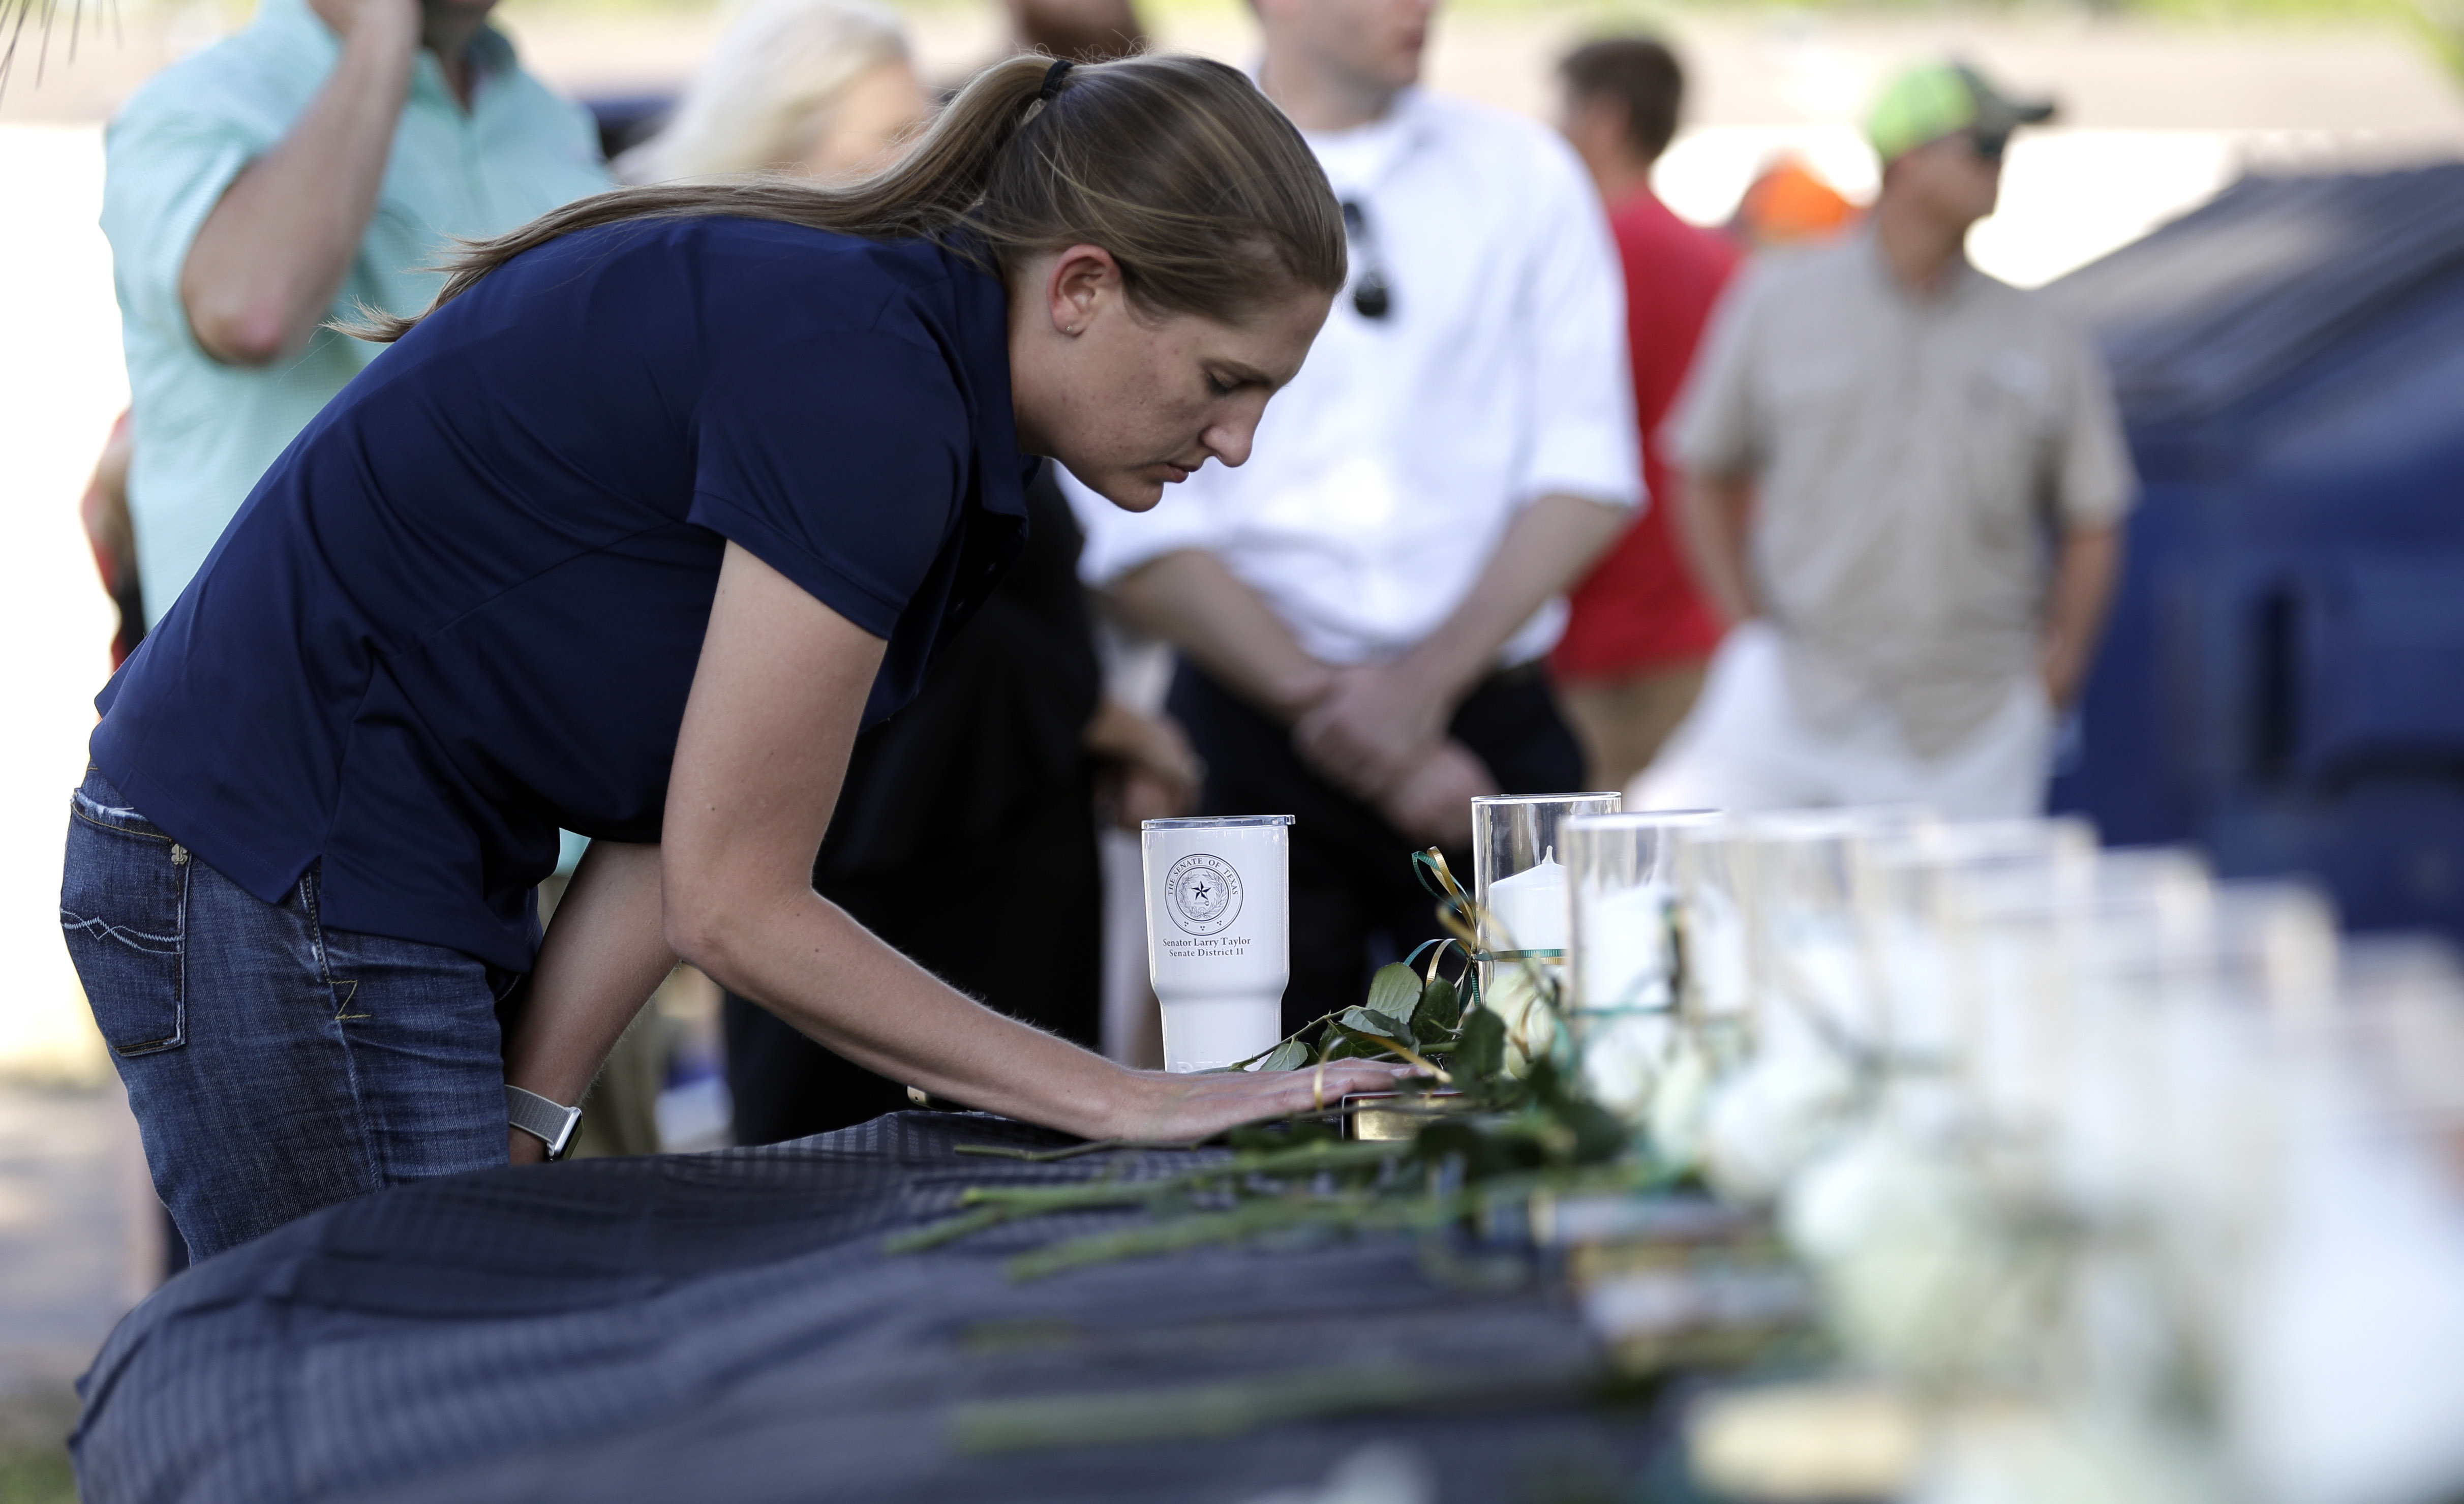 <div class='meta'><div class='origin-logo' data-origin='AP'></div><span class='caption-text' data-credit='AP'>A woman pauses at a table with 10 candles, roses and bibles displayed during a prayer vigil following a deadly shooting at Santa Fe High School. (AP Photo/David J. Phillip)</span></div>